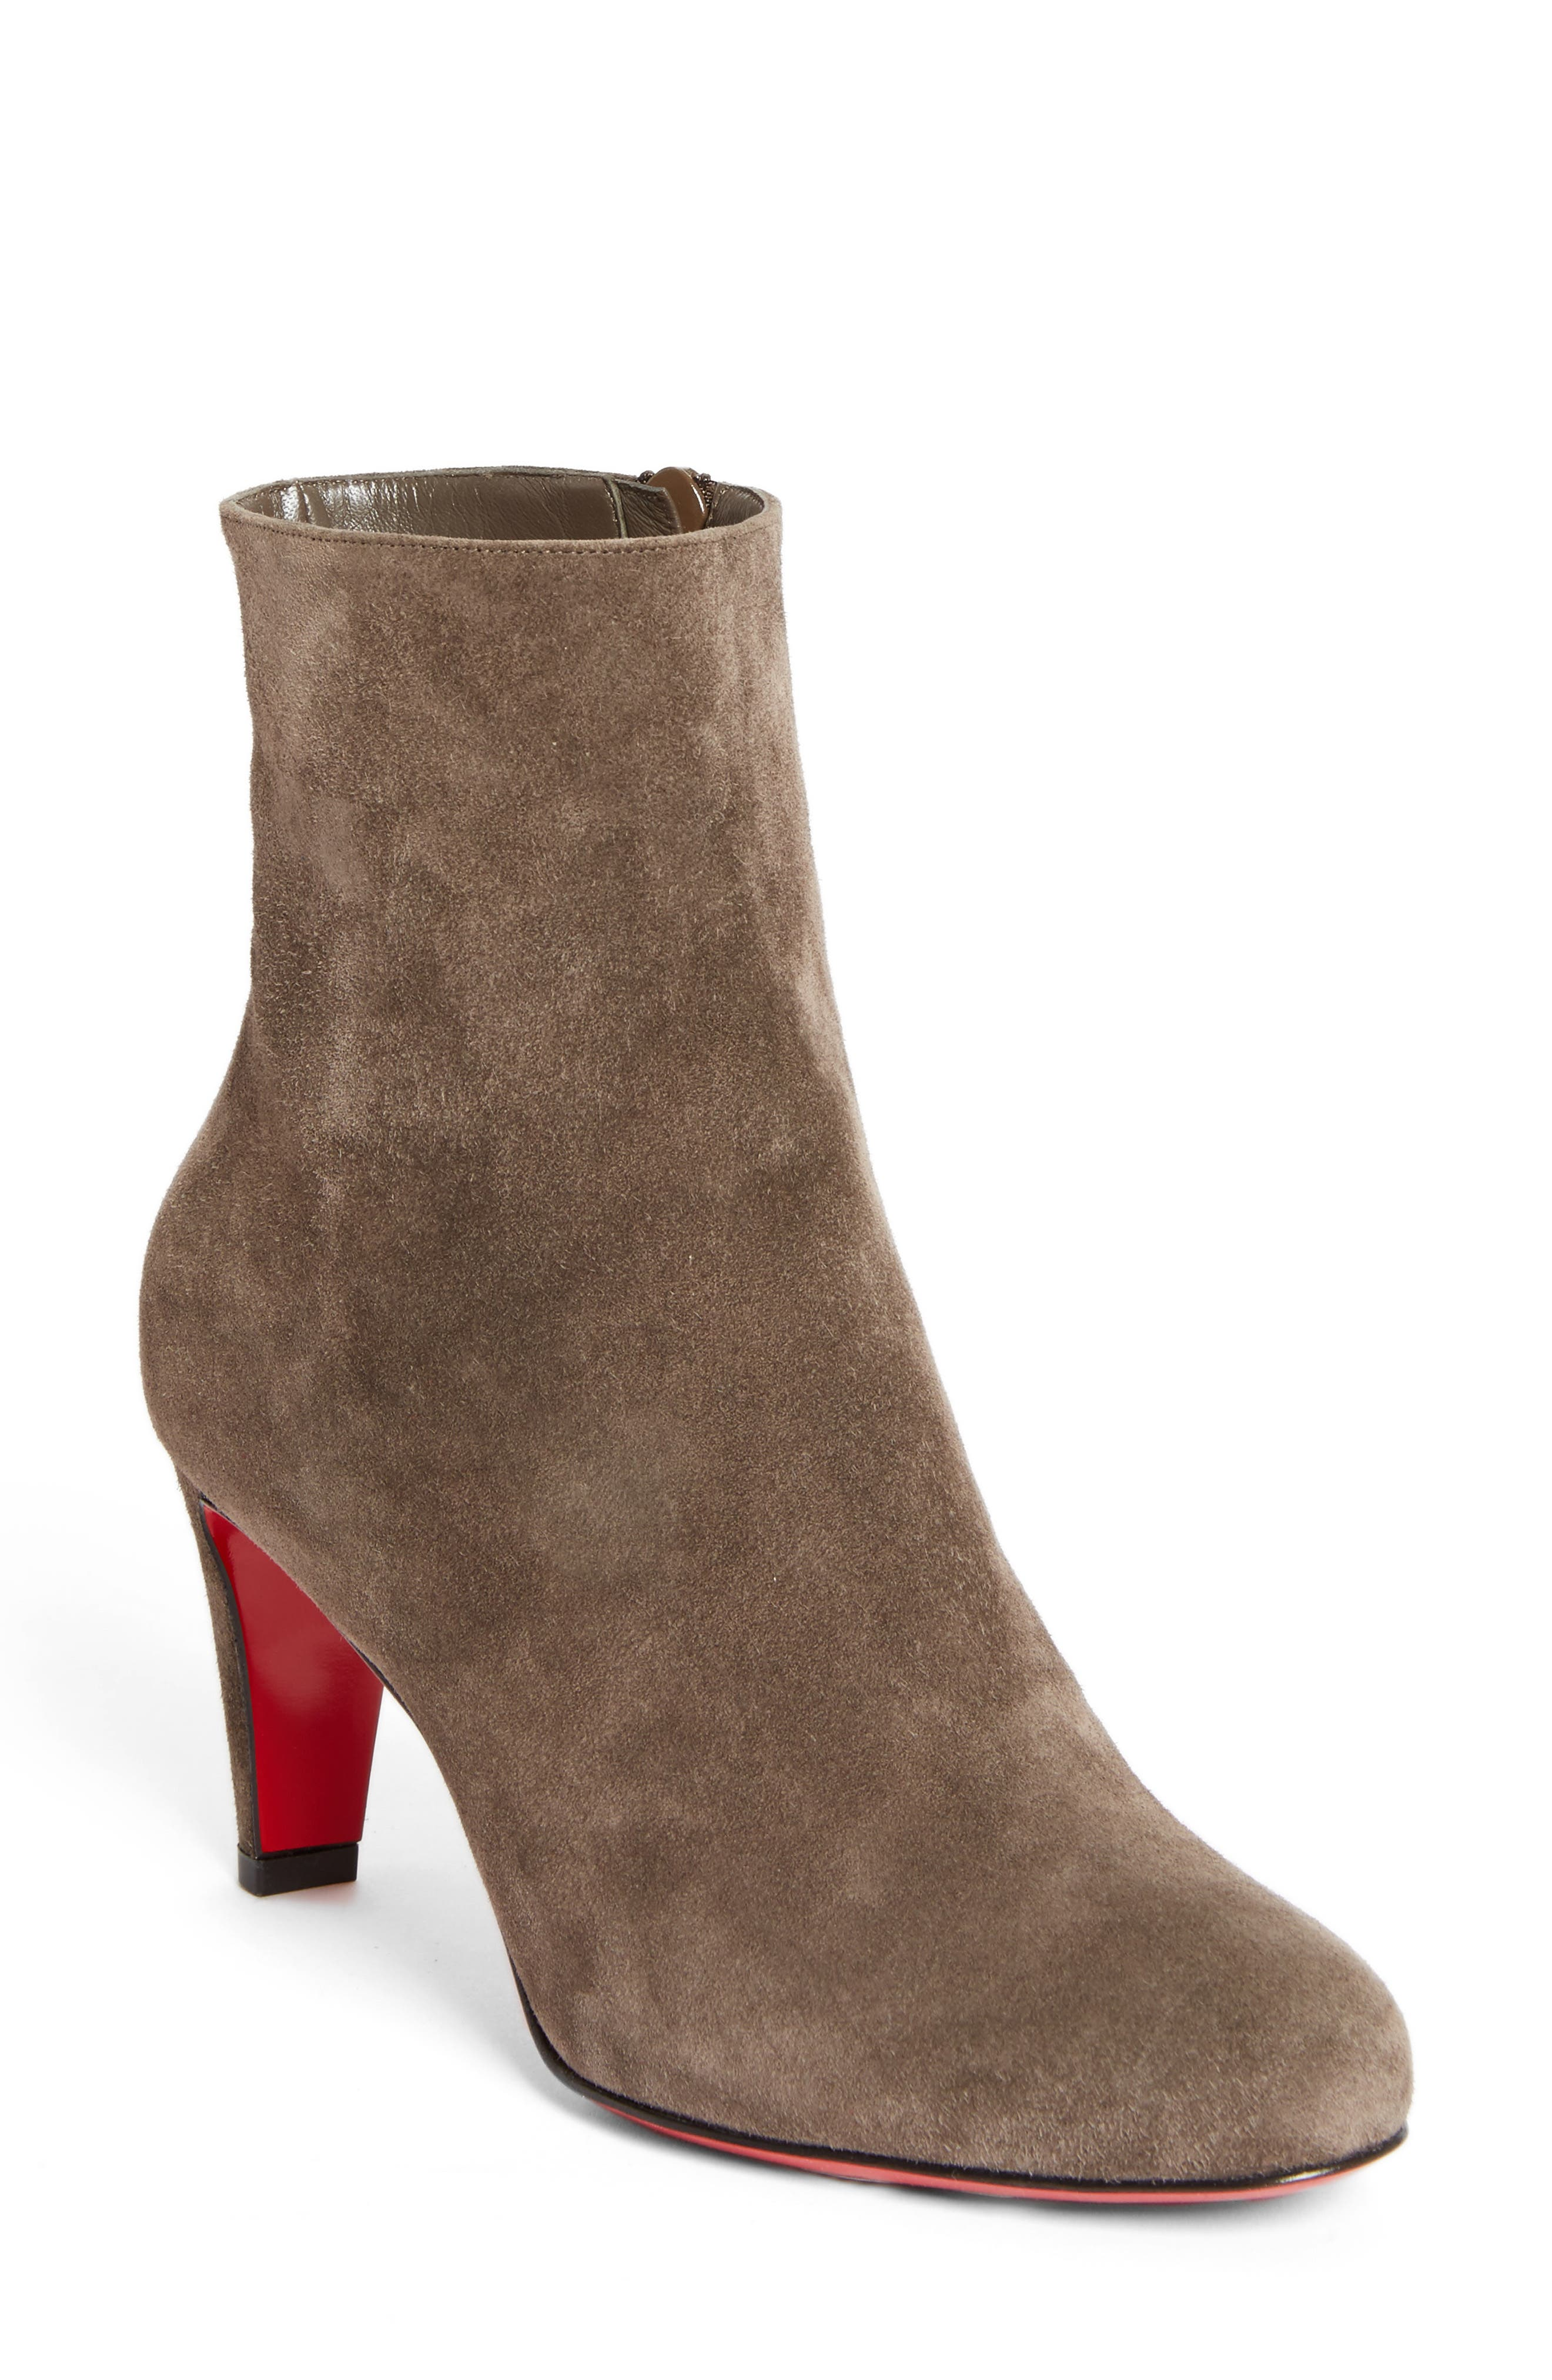 Alternate Image 1 Selected - Christian Louboutin 'Top' Ankle Bootie